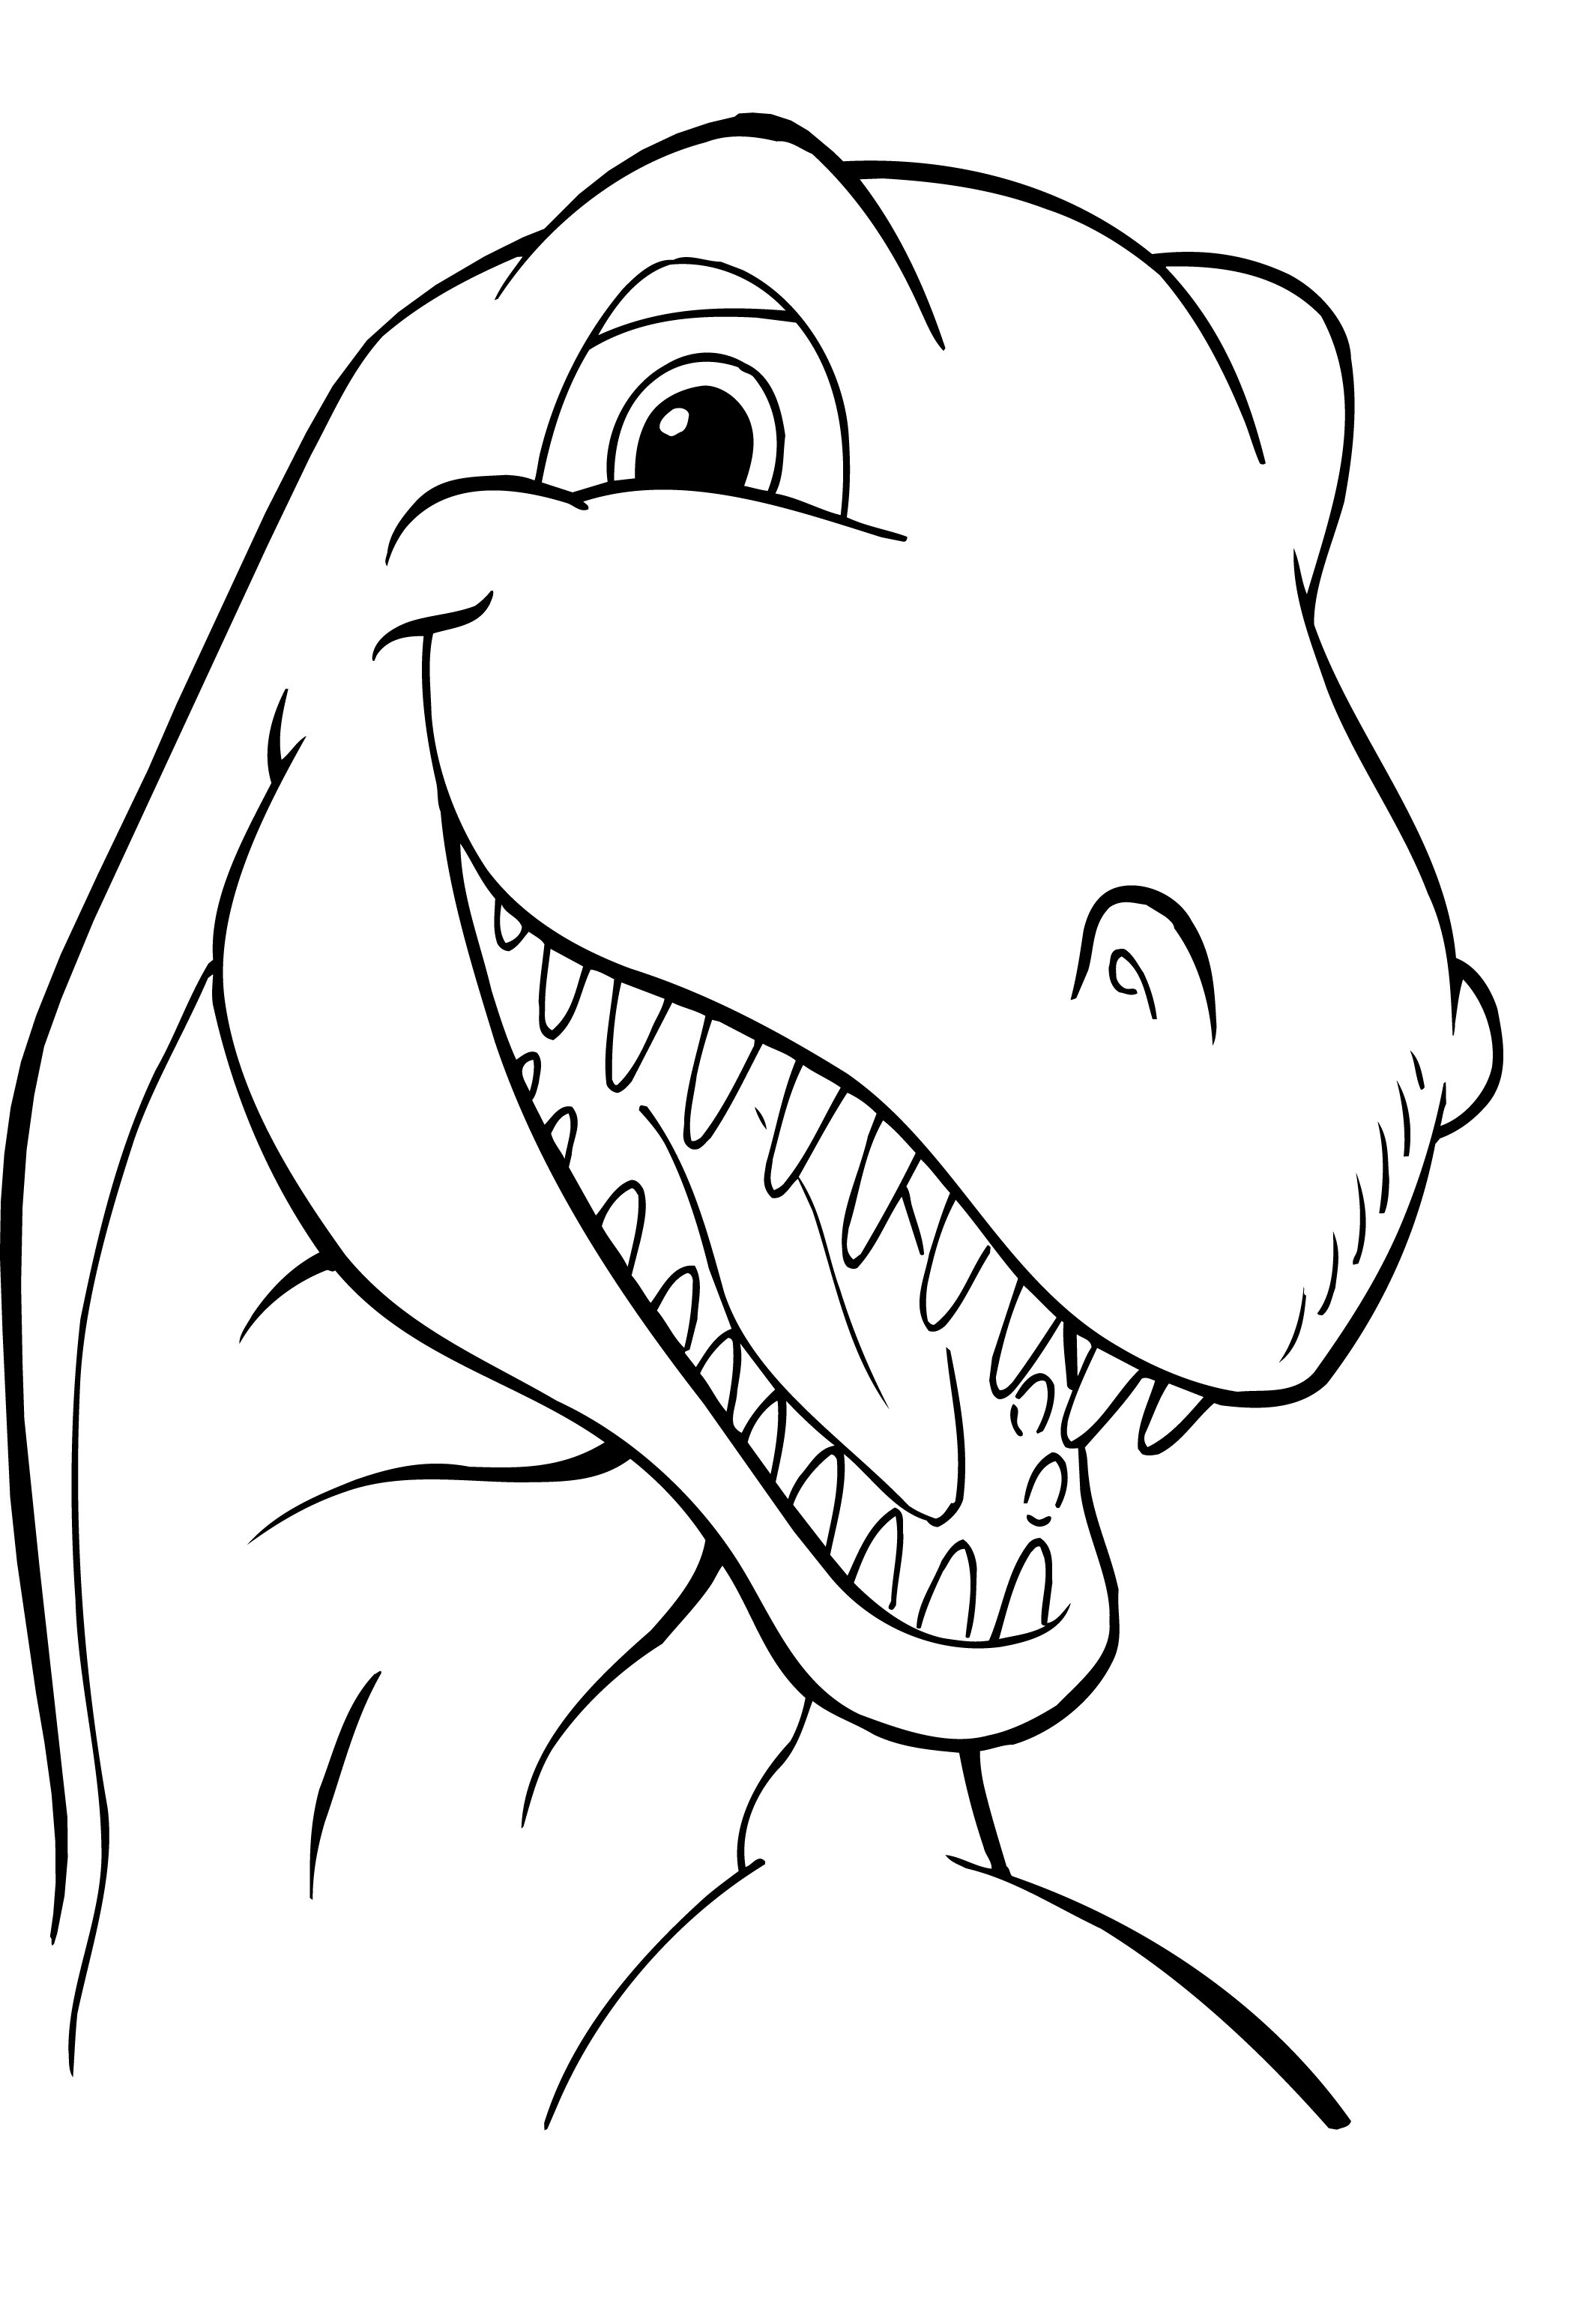 dinosaur coloring image coloring pages dinosaur free printable coloring pages dinosaur coloring image